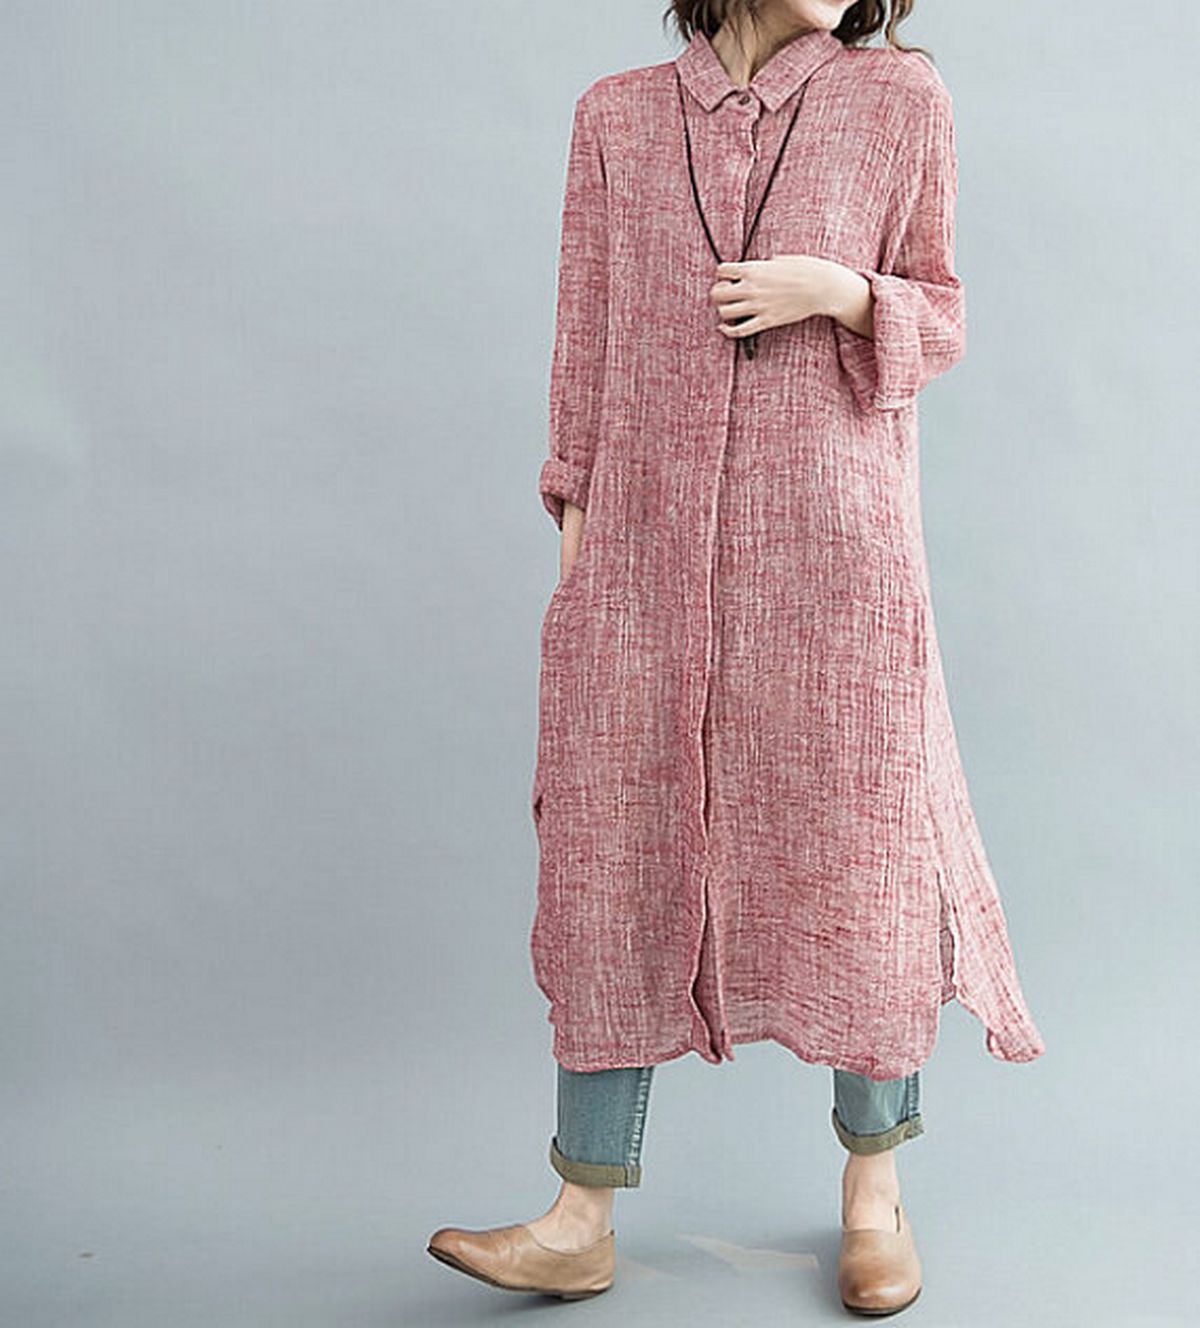 Pink sleeve dress idea for daily action 44 fashion